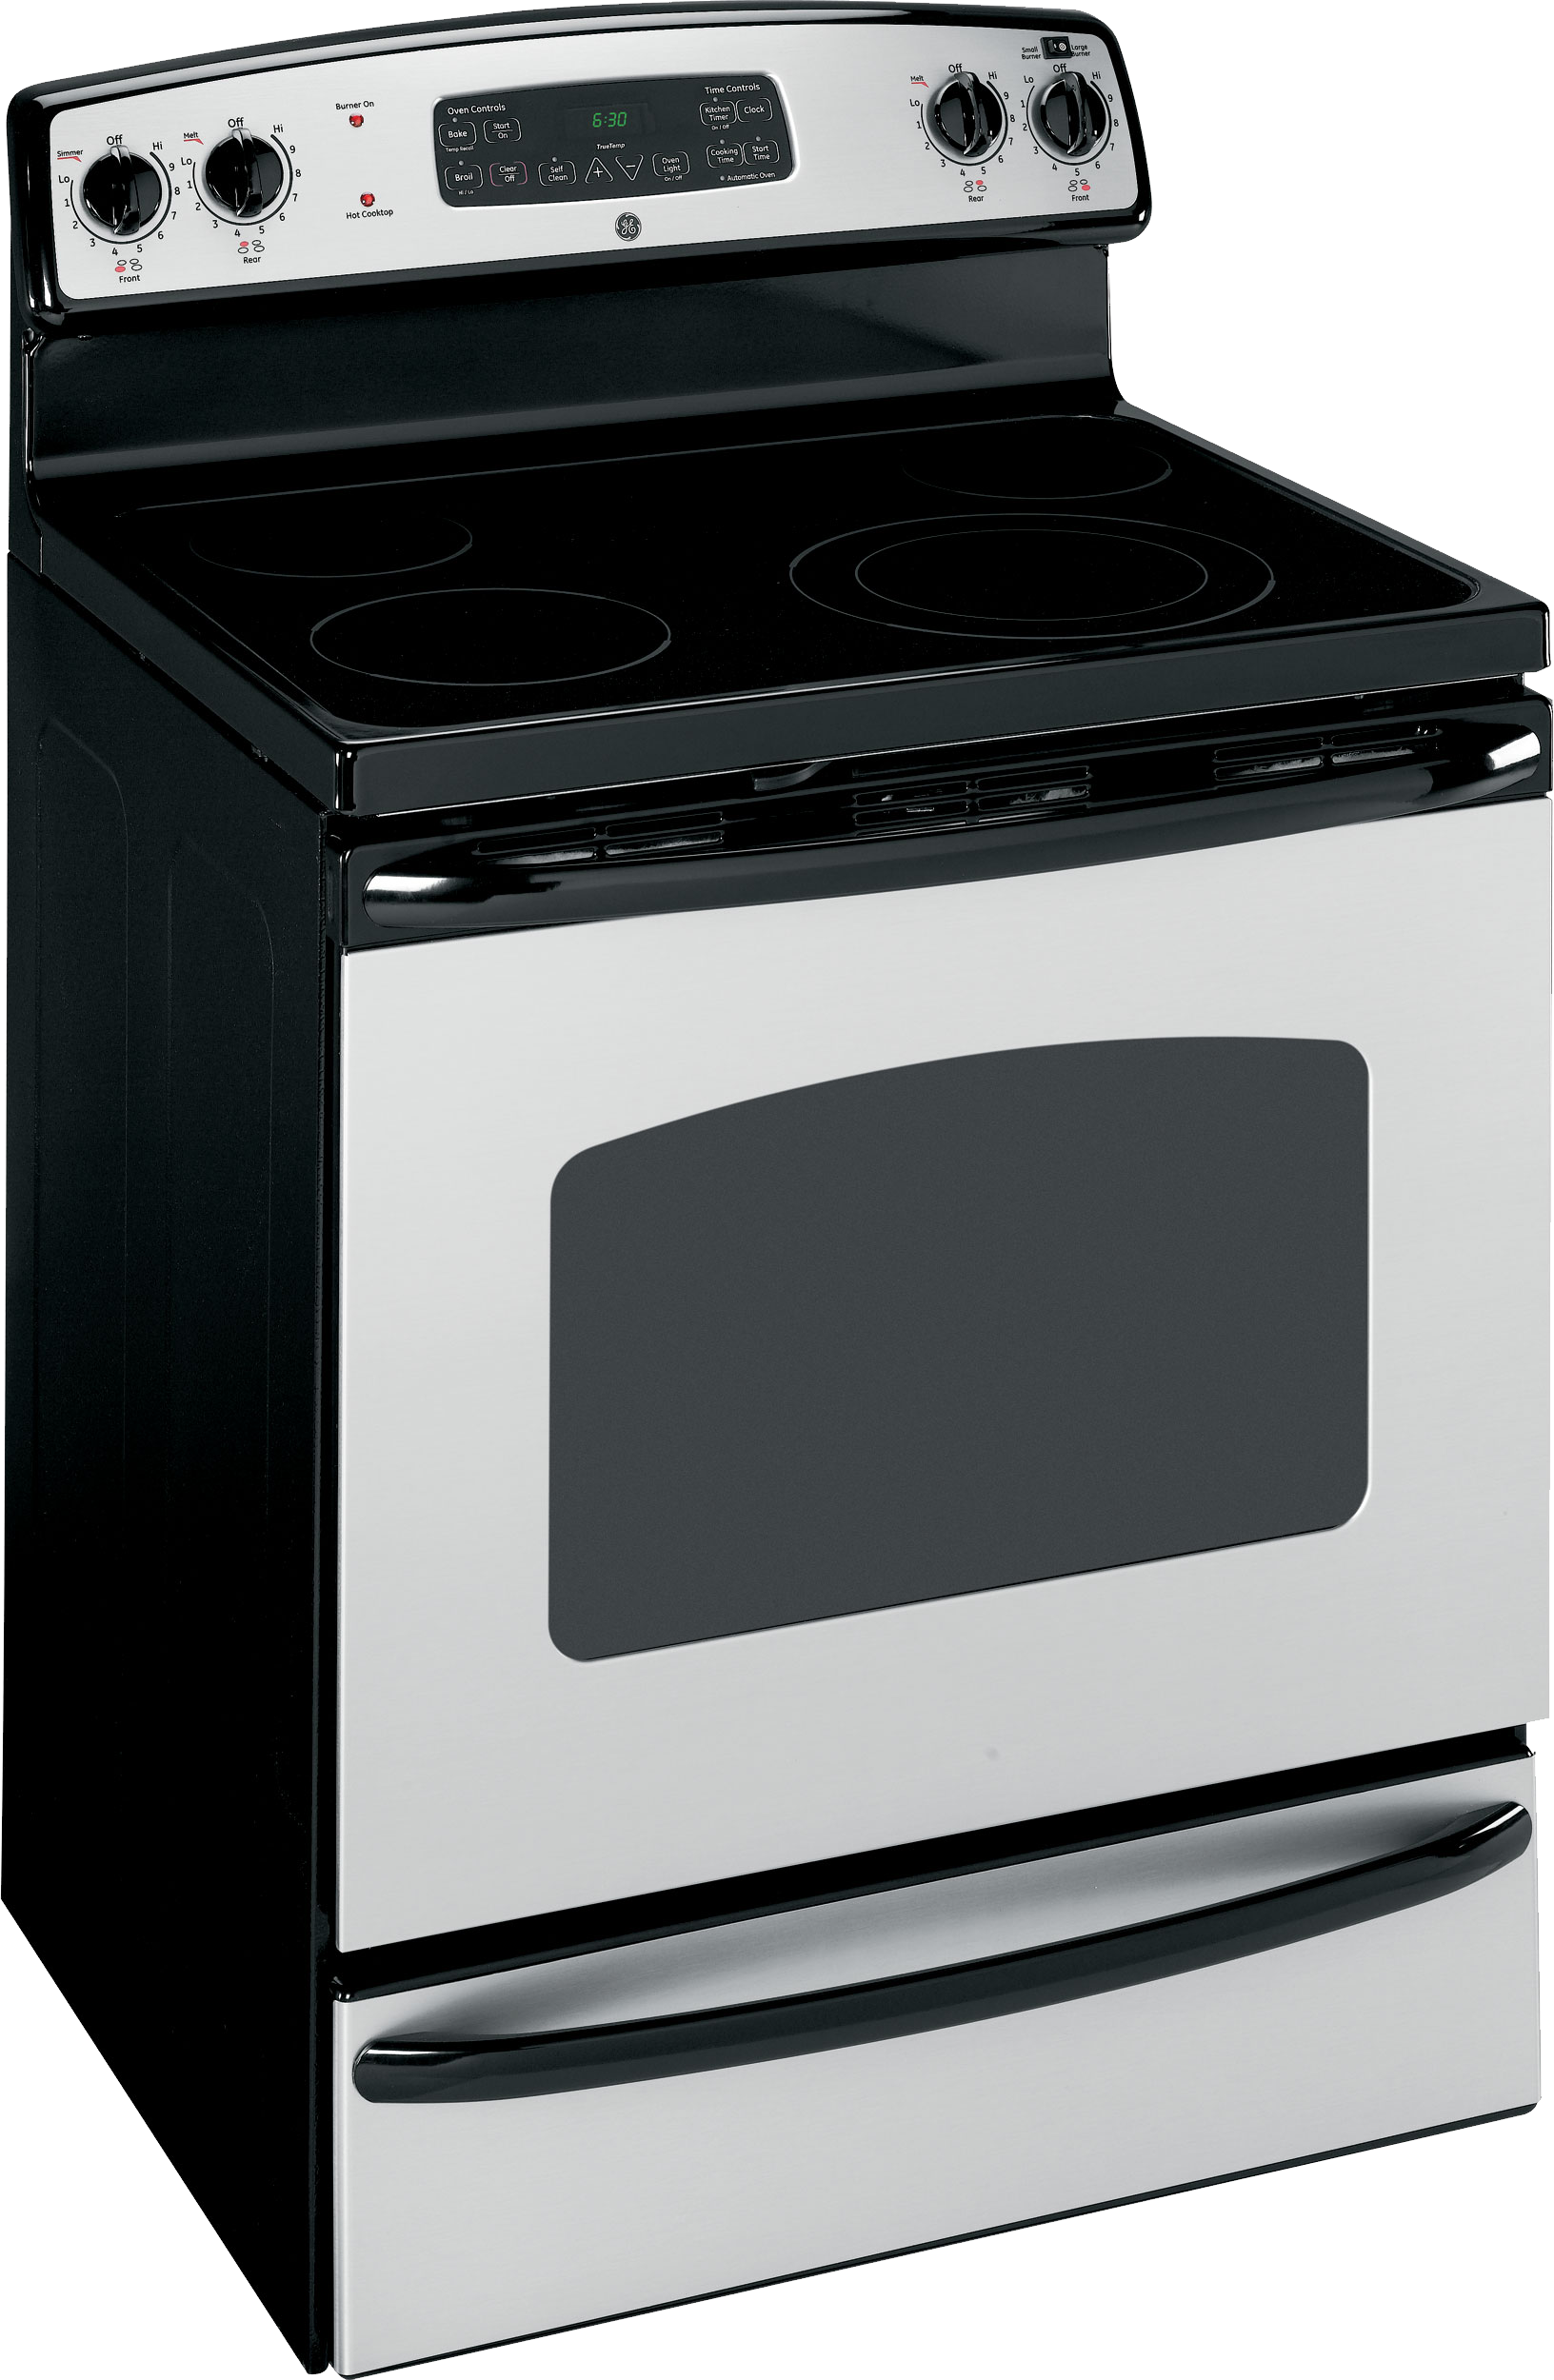 Stove png images electric. Microwave clipart hot oven